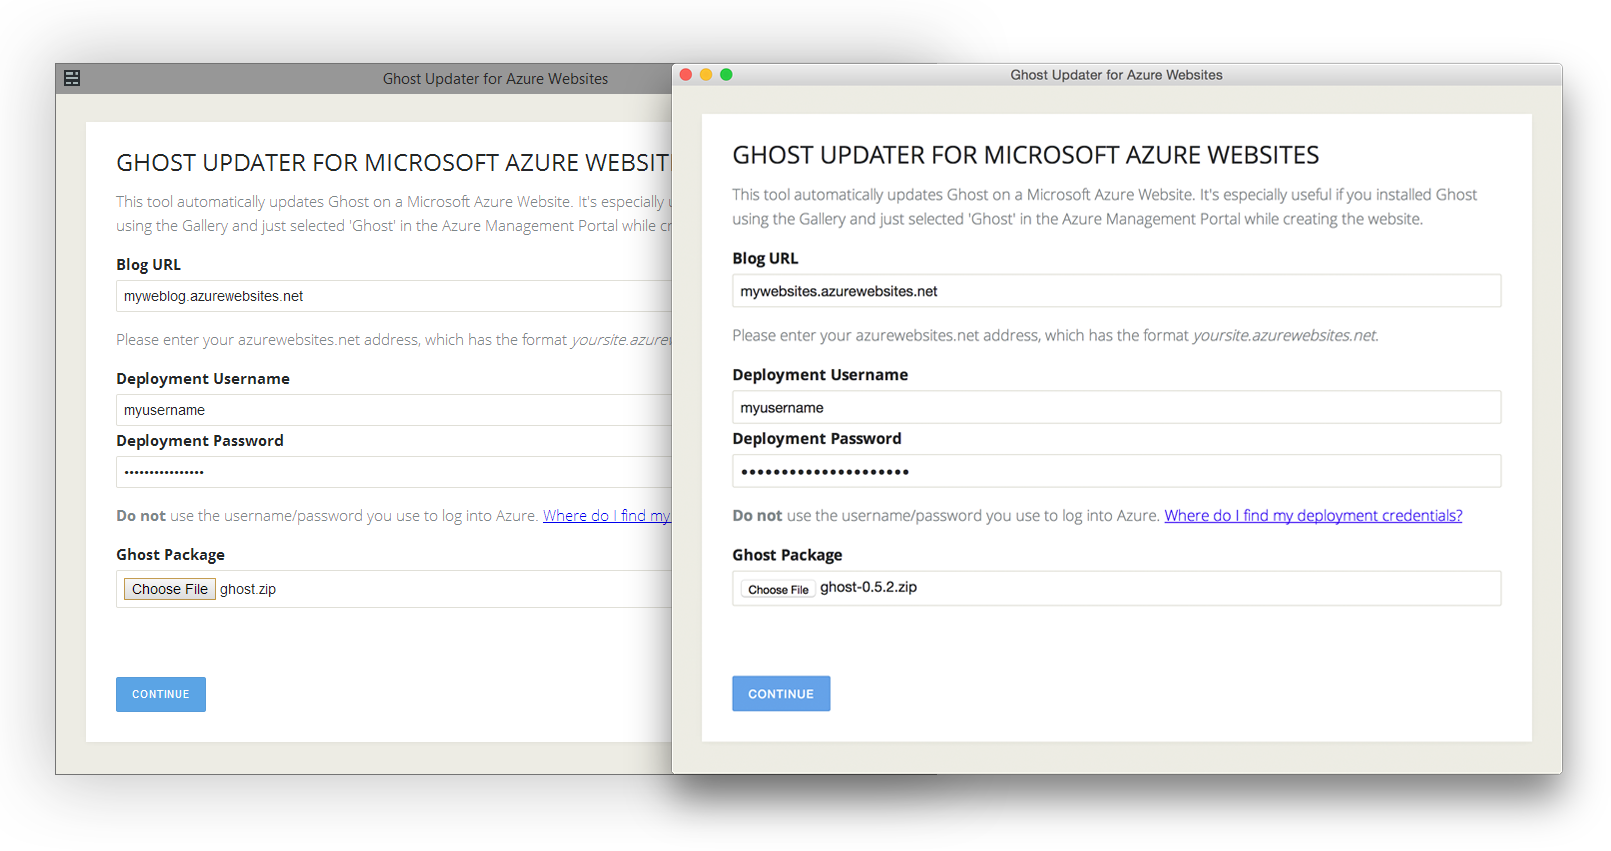 Ghost Updater for Azure